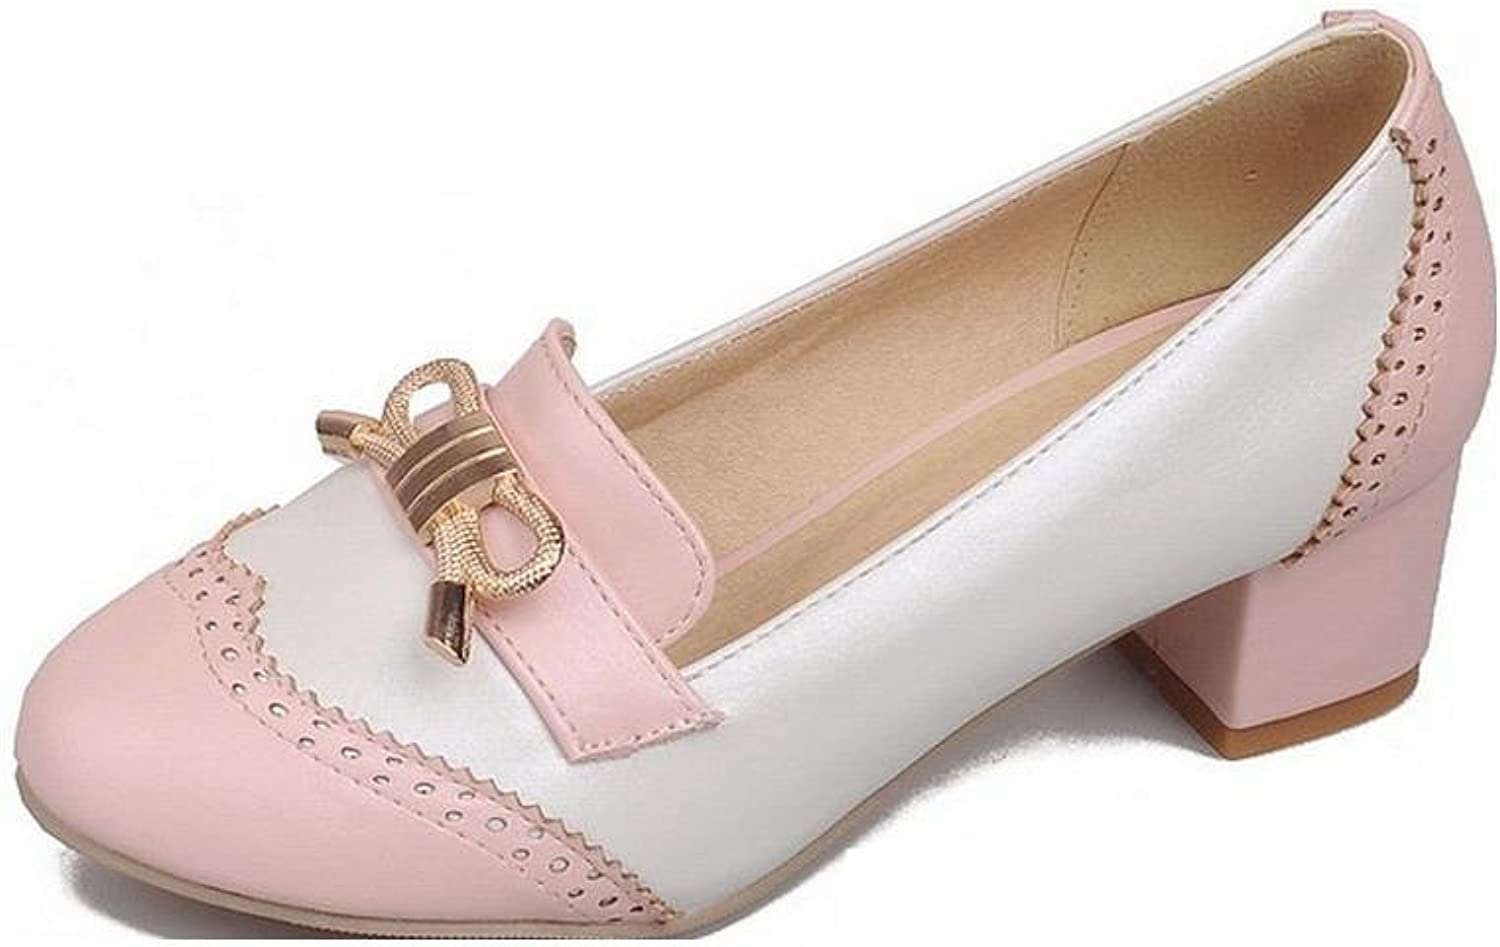 AllhqFashion Women's Assorted color PU Low-Heels Round Closed Toe Pull-on Pumps-shoes